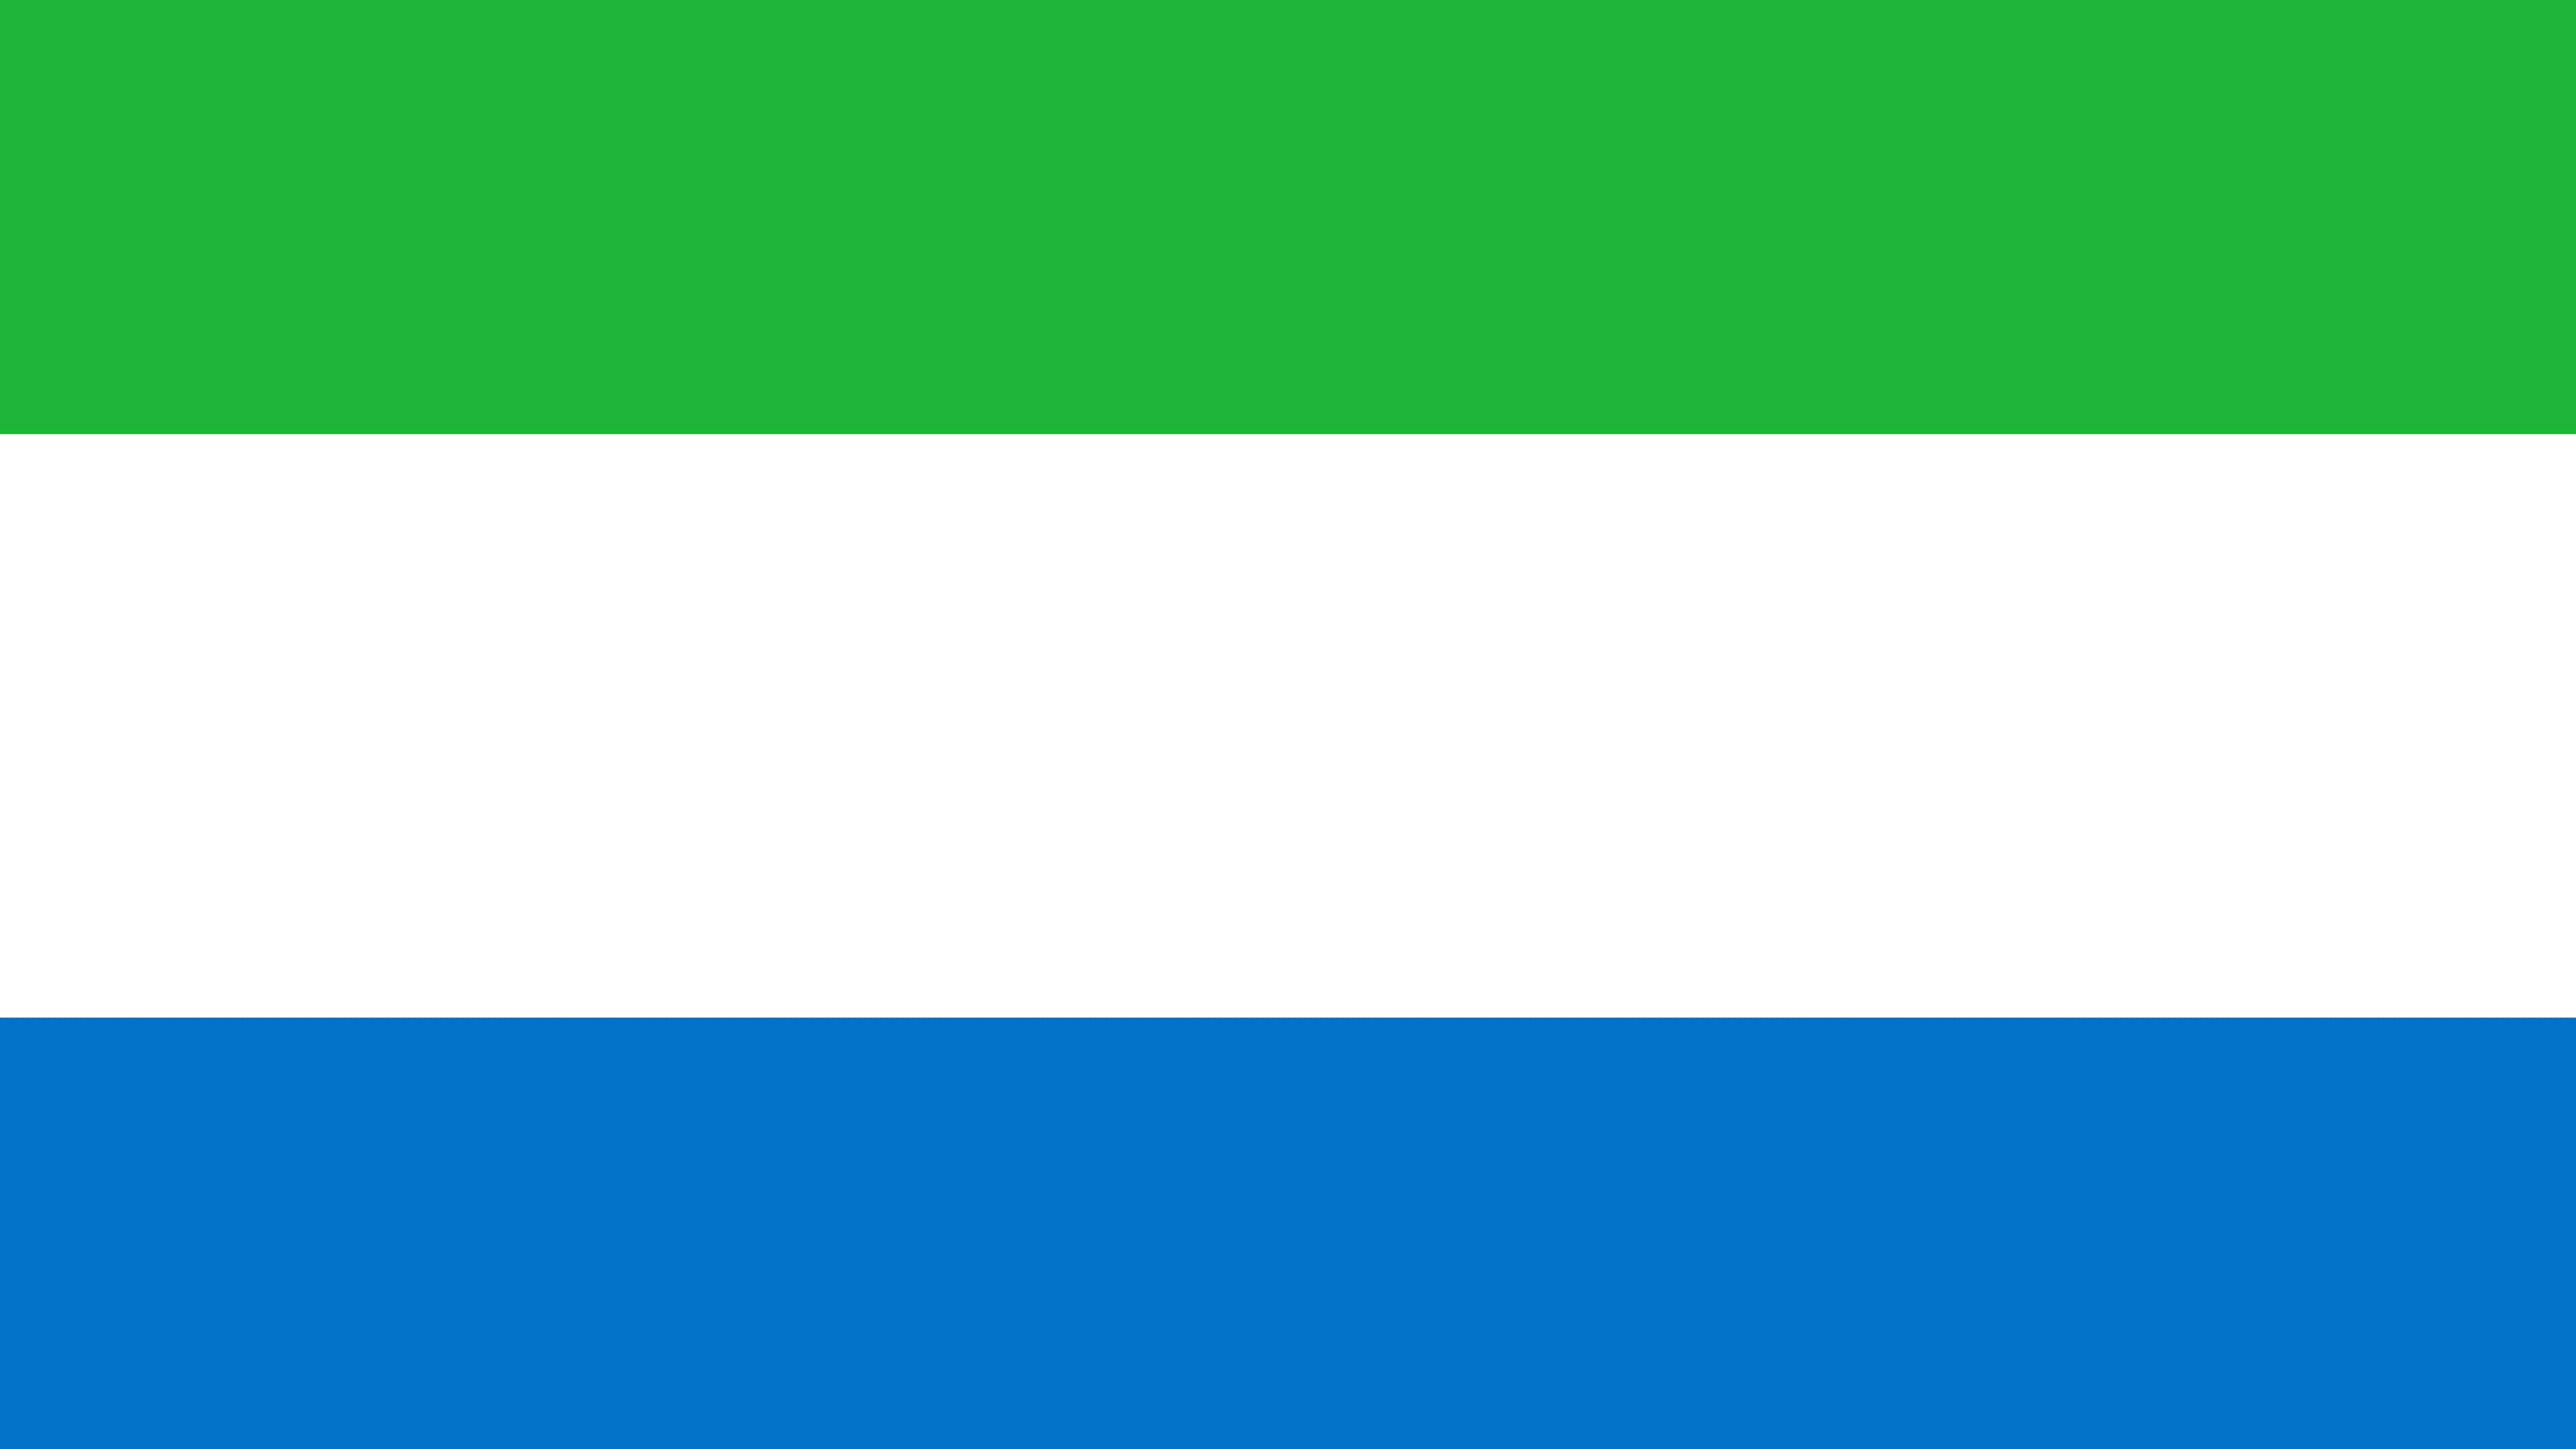 sierra leone flag uhd 4k wallpaper